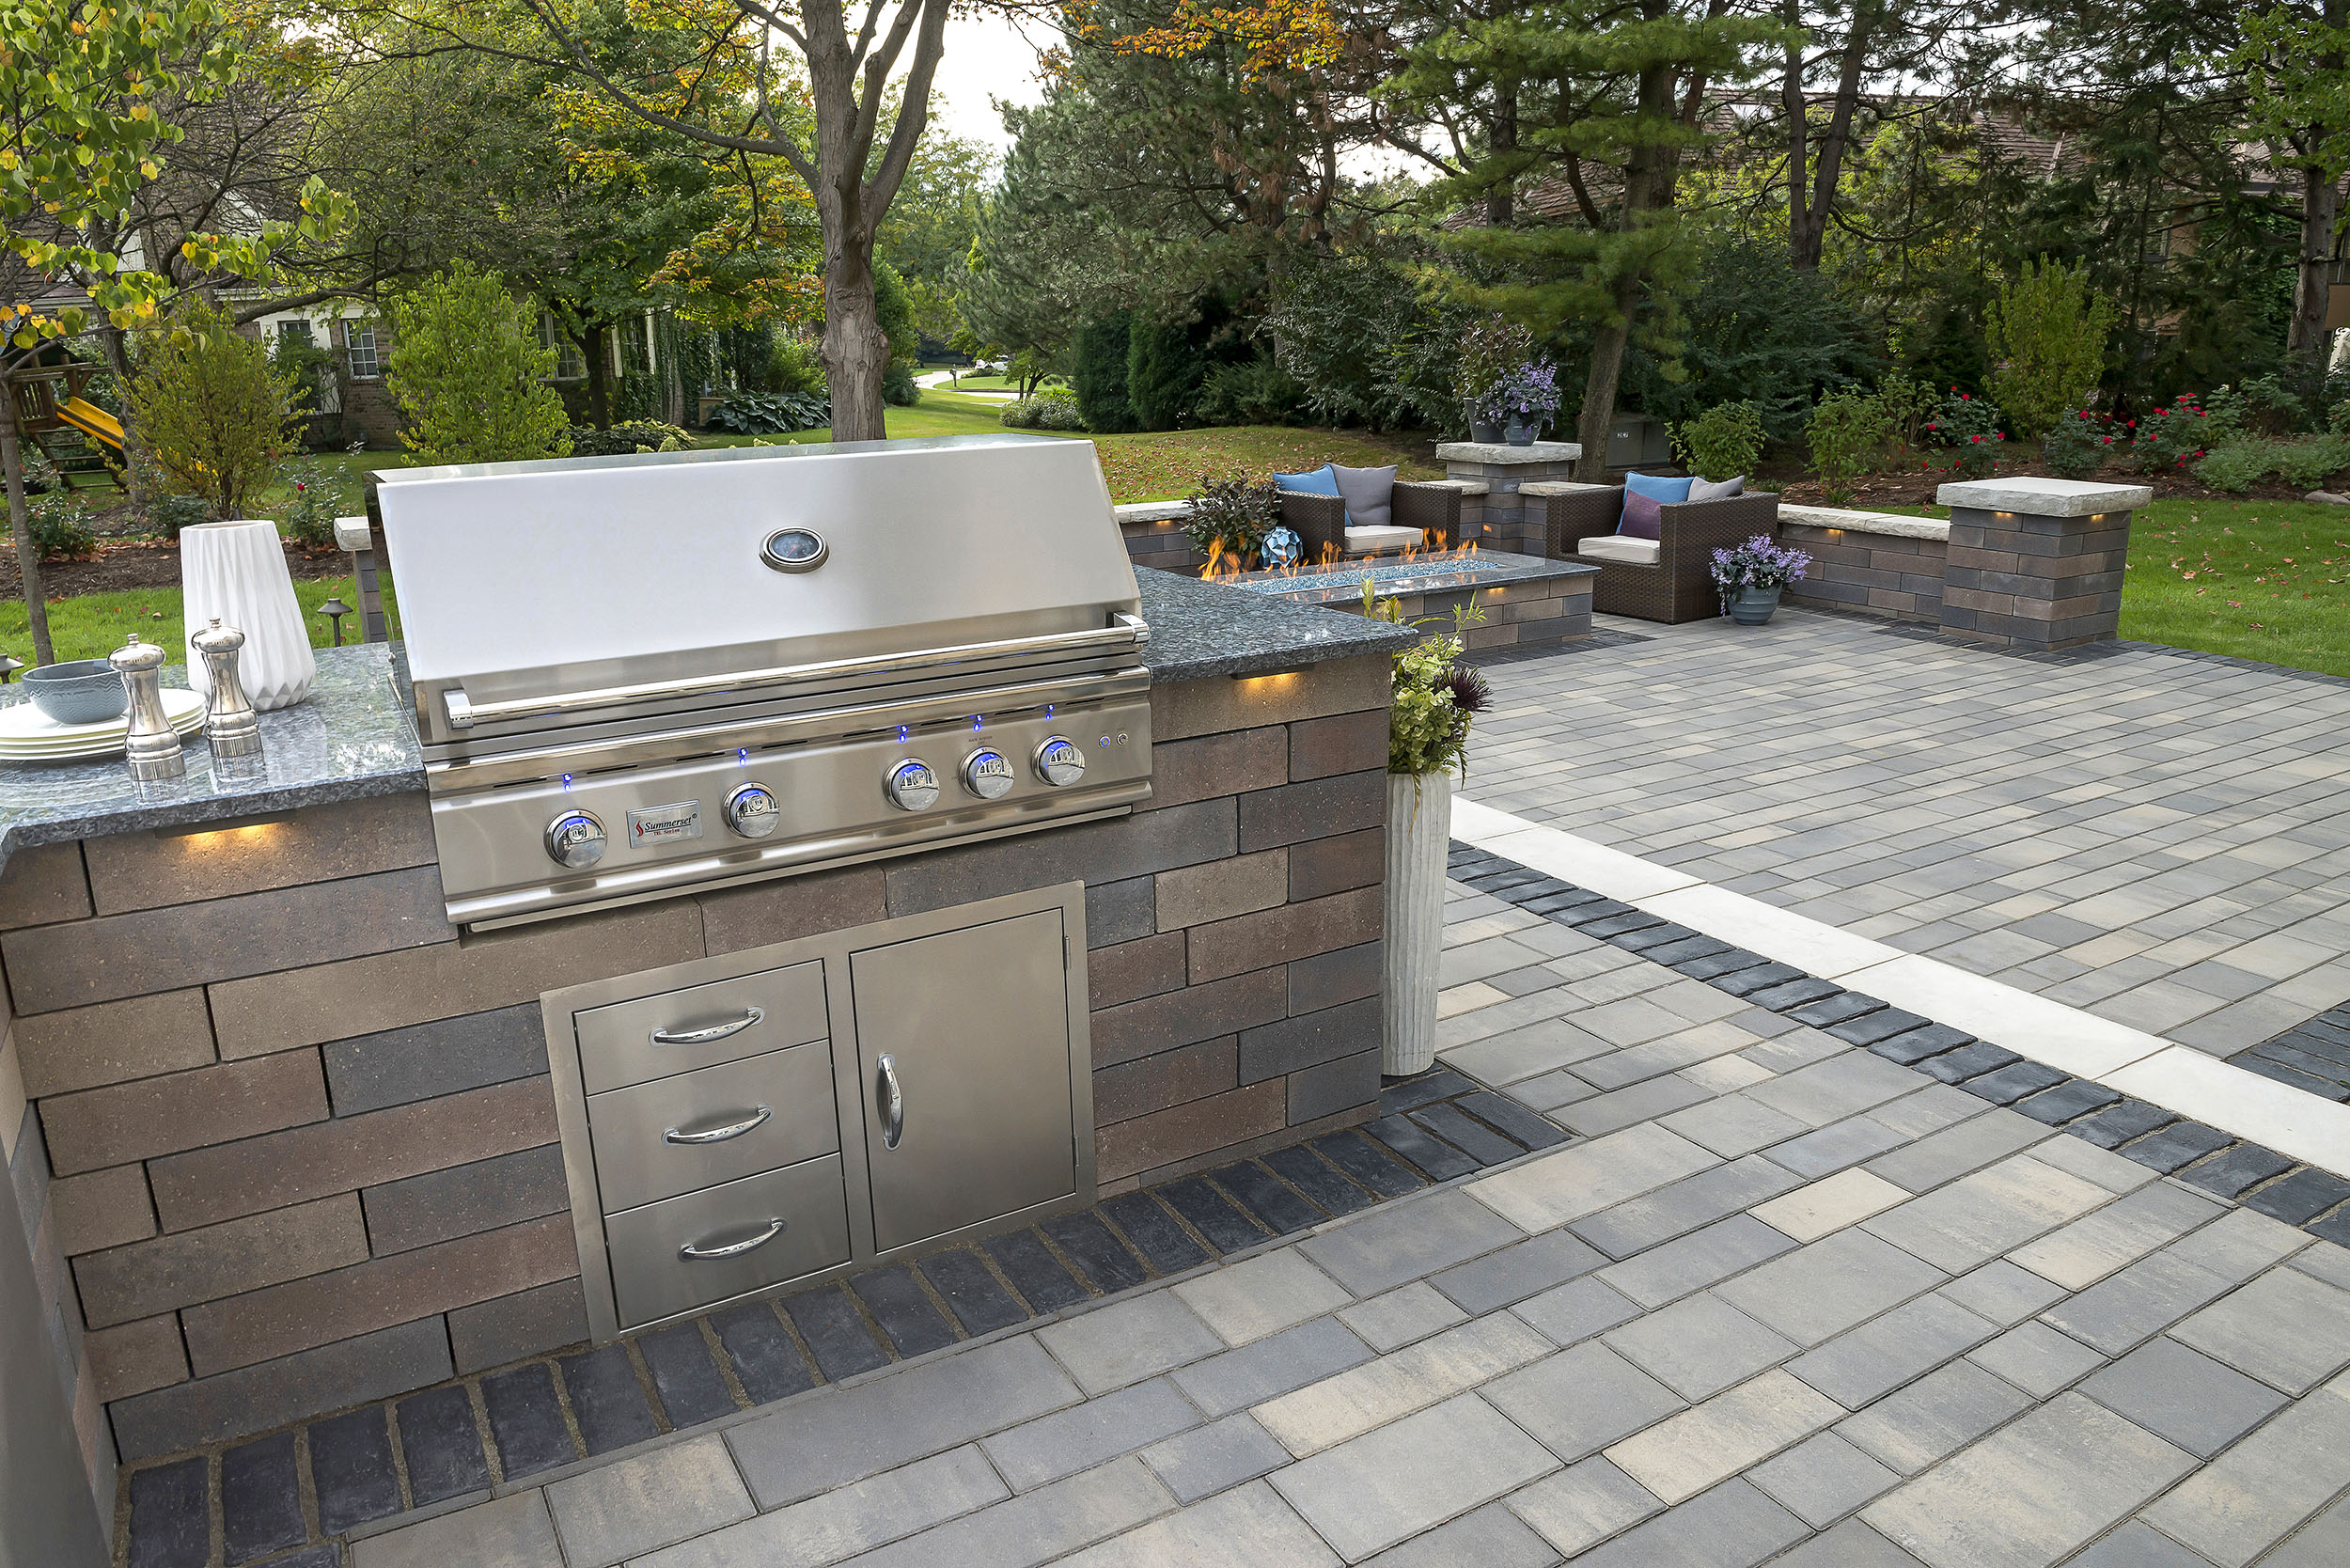 Outdoor kitchens by hardscape dealer in Harrisburg Dauphin County PA